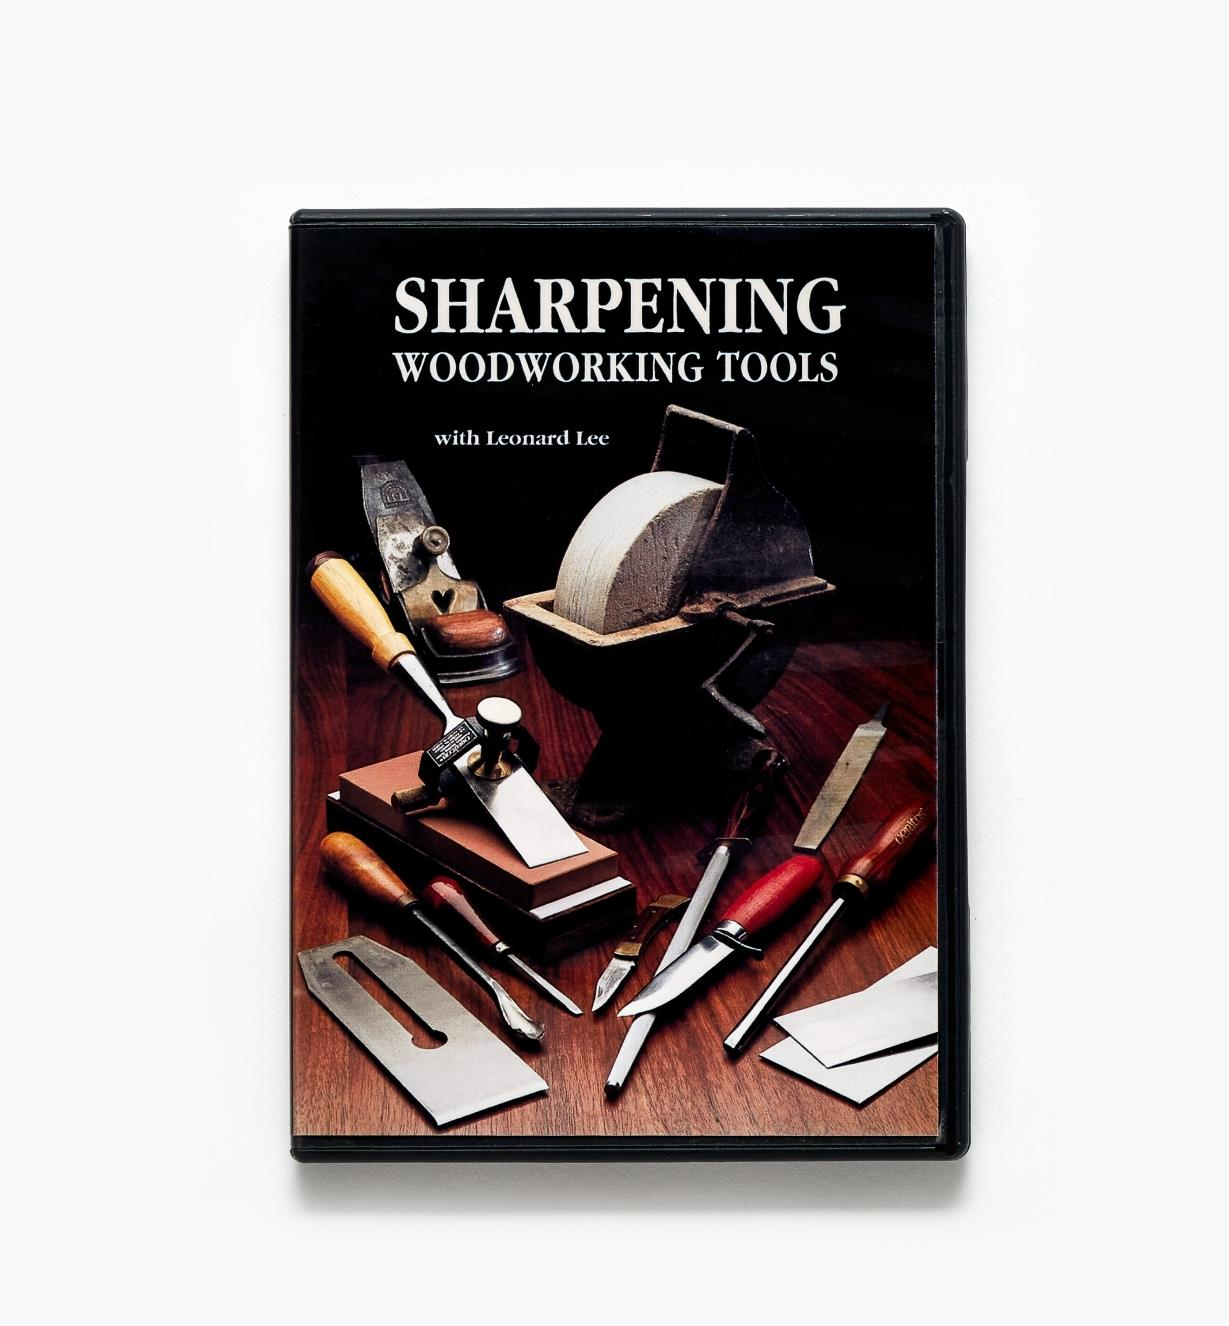 50L0102 - Sharpening Woodworking Tools - DVD